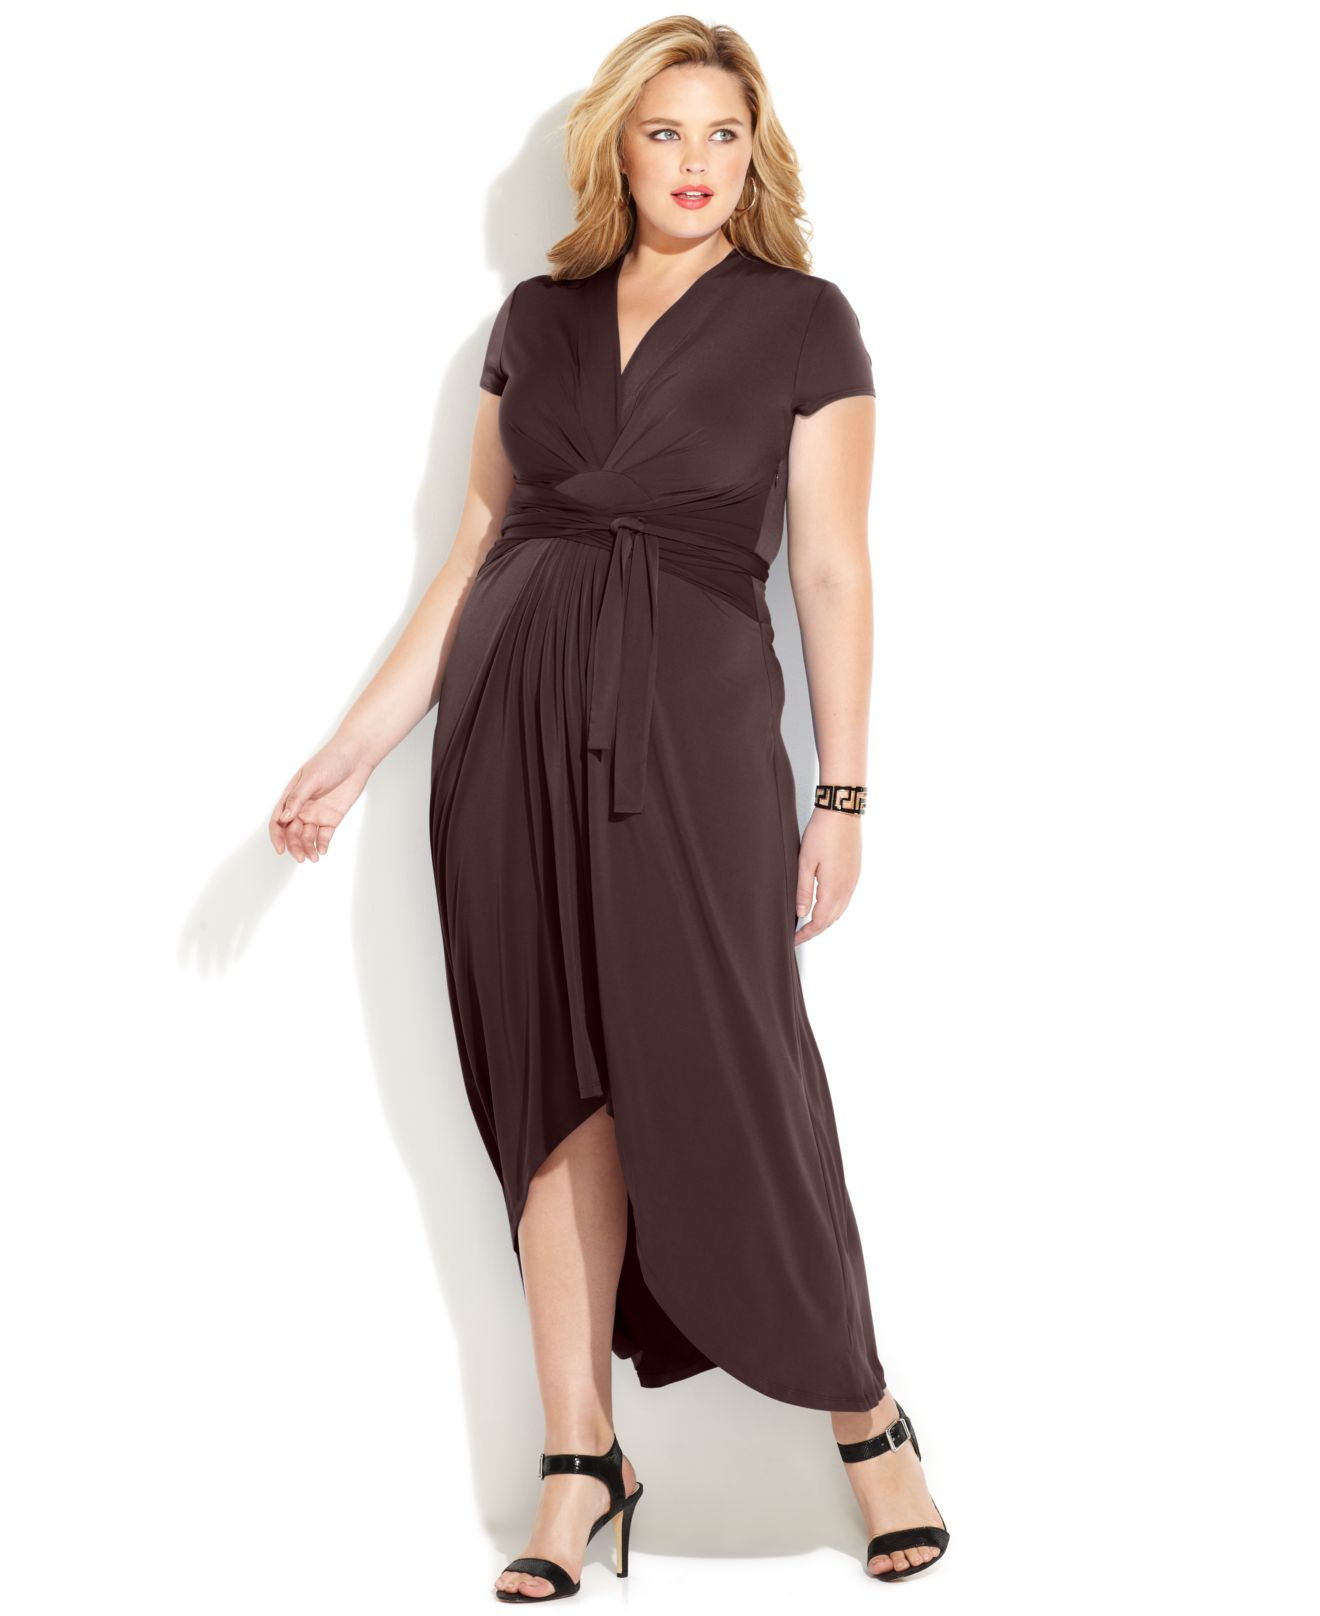 Brown Plus Size Dresses – Fashion dresses